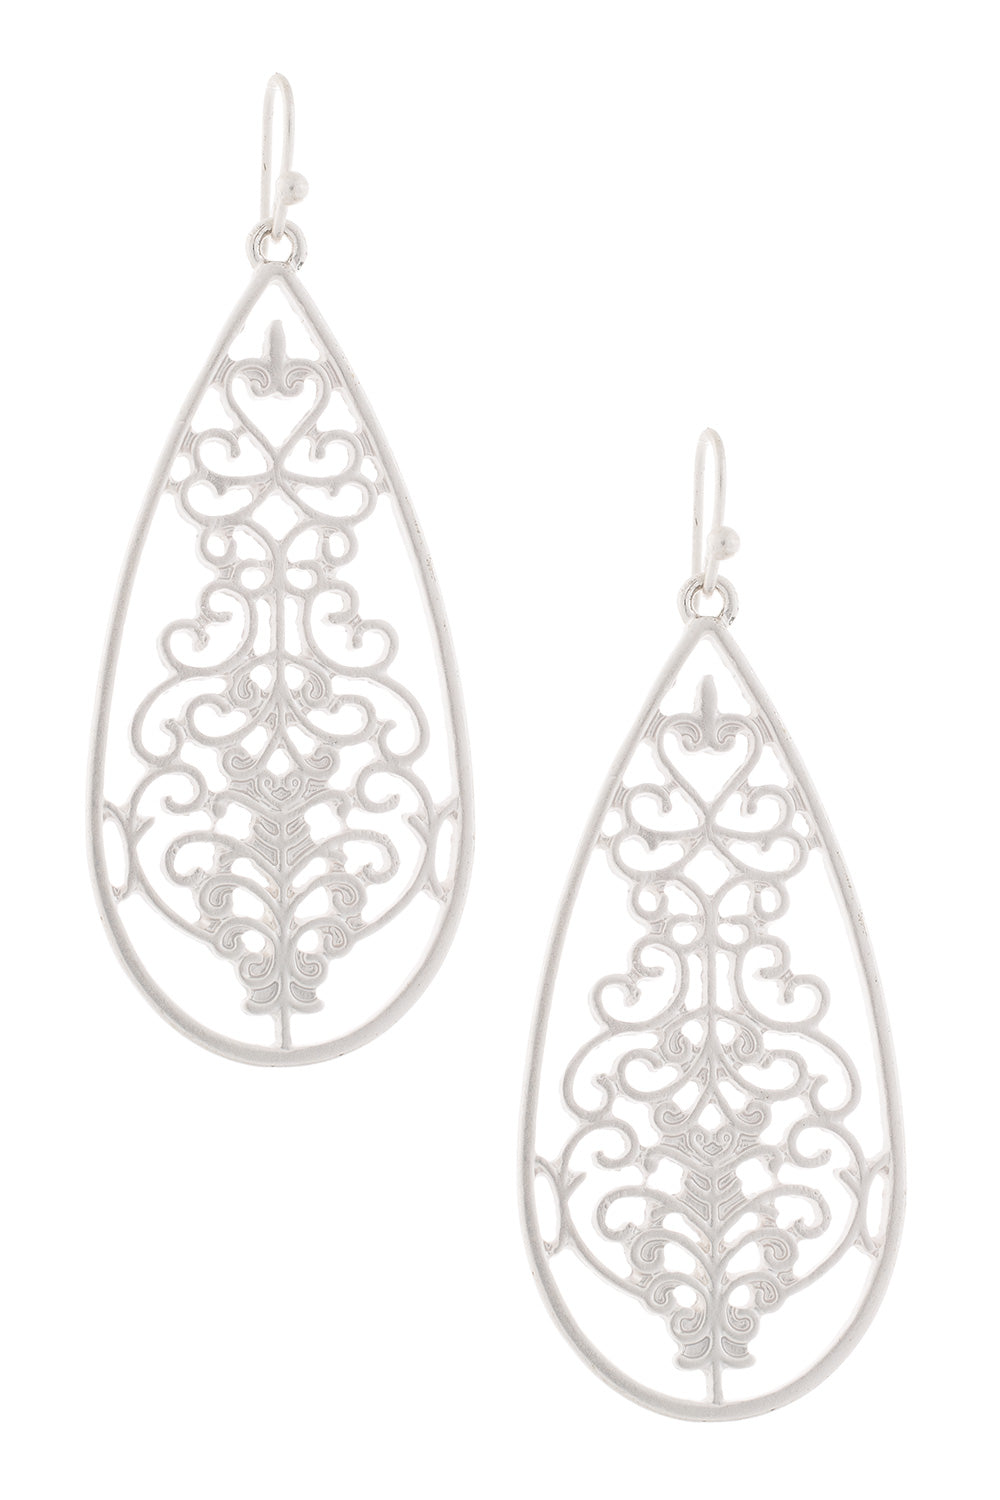 Type 2 Beautiful Teardrop Earrings